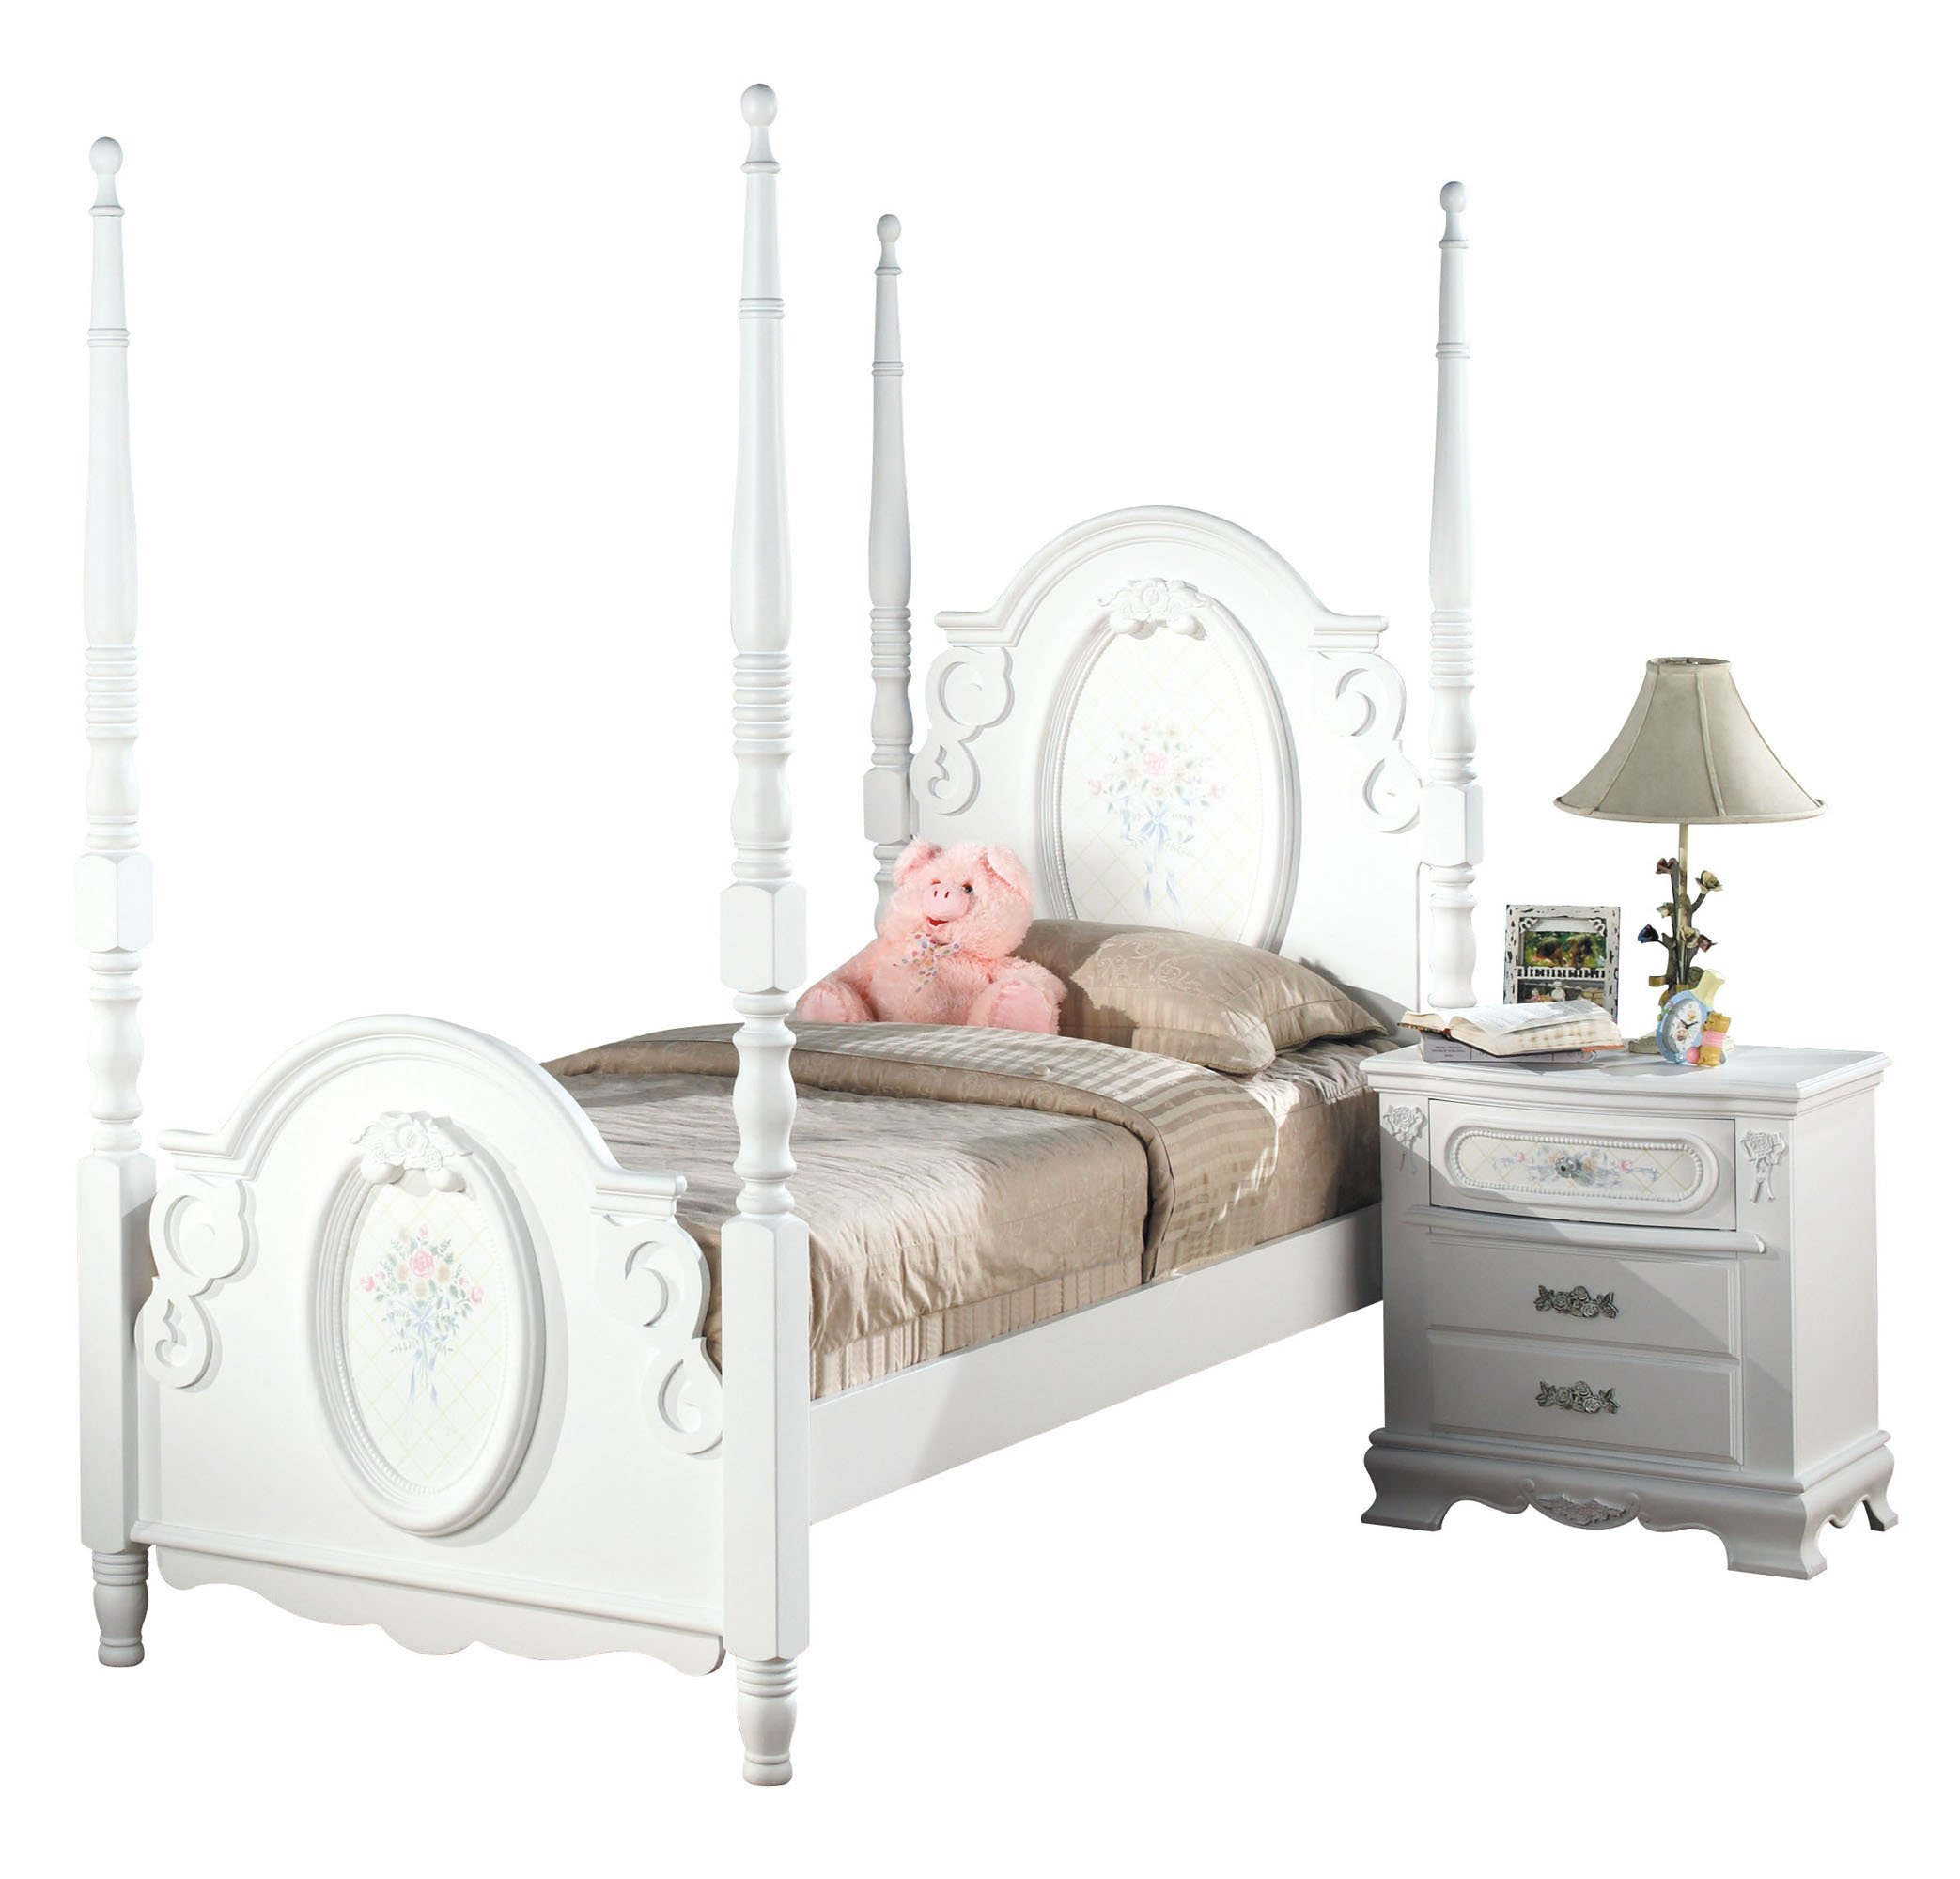 ACME 01660T Flora Post Bed, Twin, White Finish